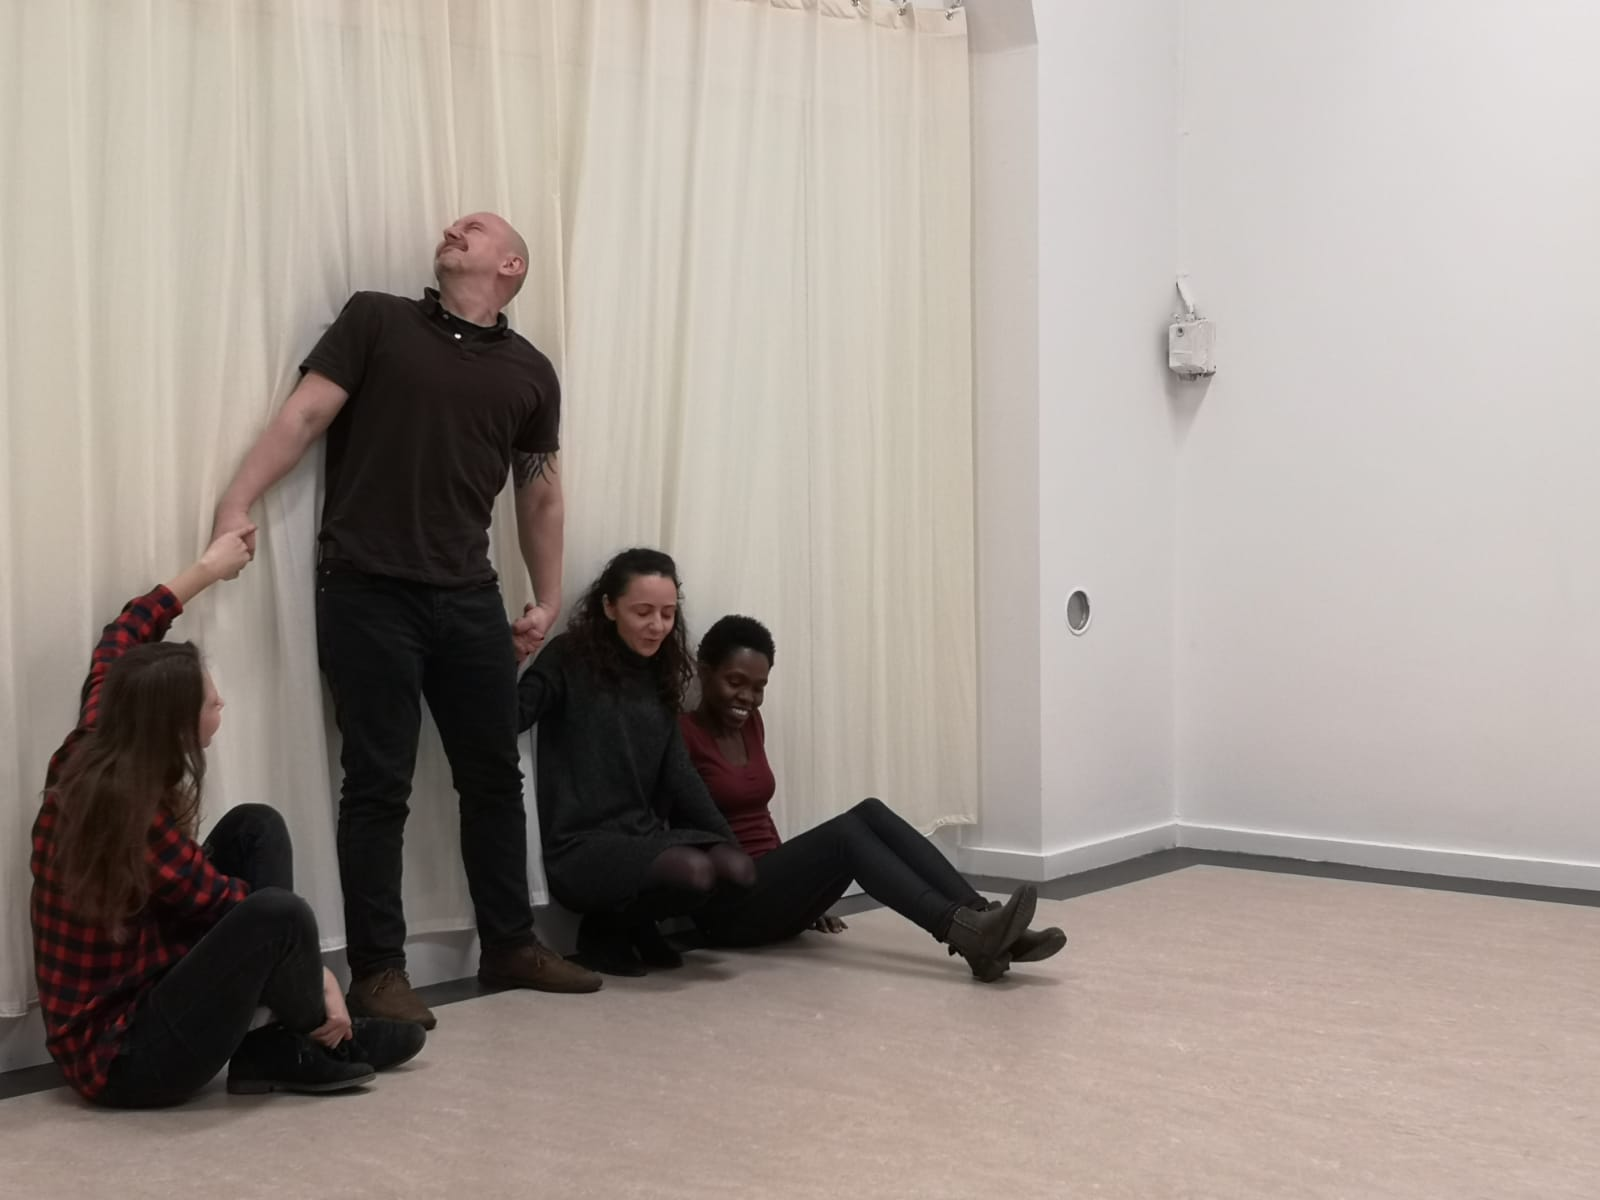 Acting Class Act Attack. Four people, three women, one man, are in a row and have their backs against the wall. The women sit on the floor. Two of them hold hands with the man who is standing